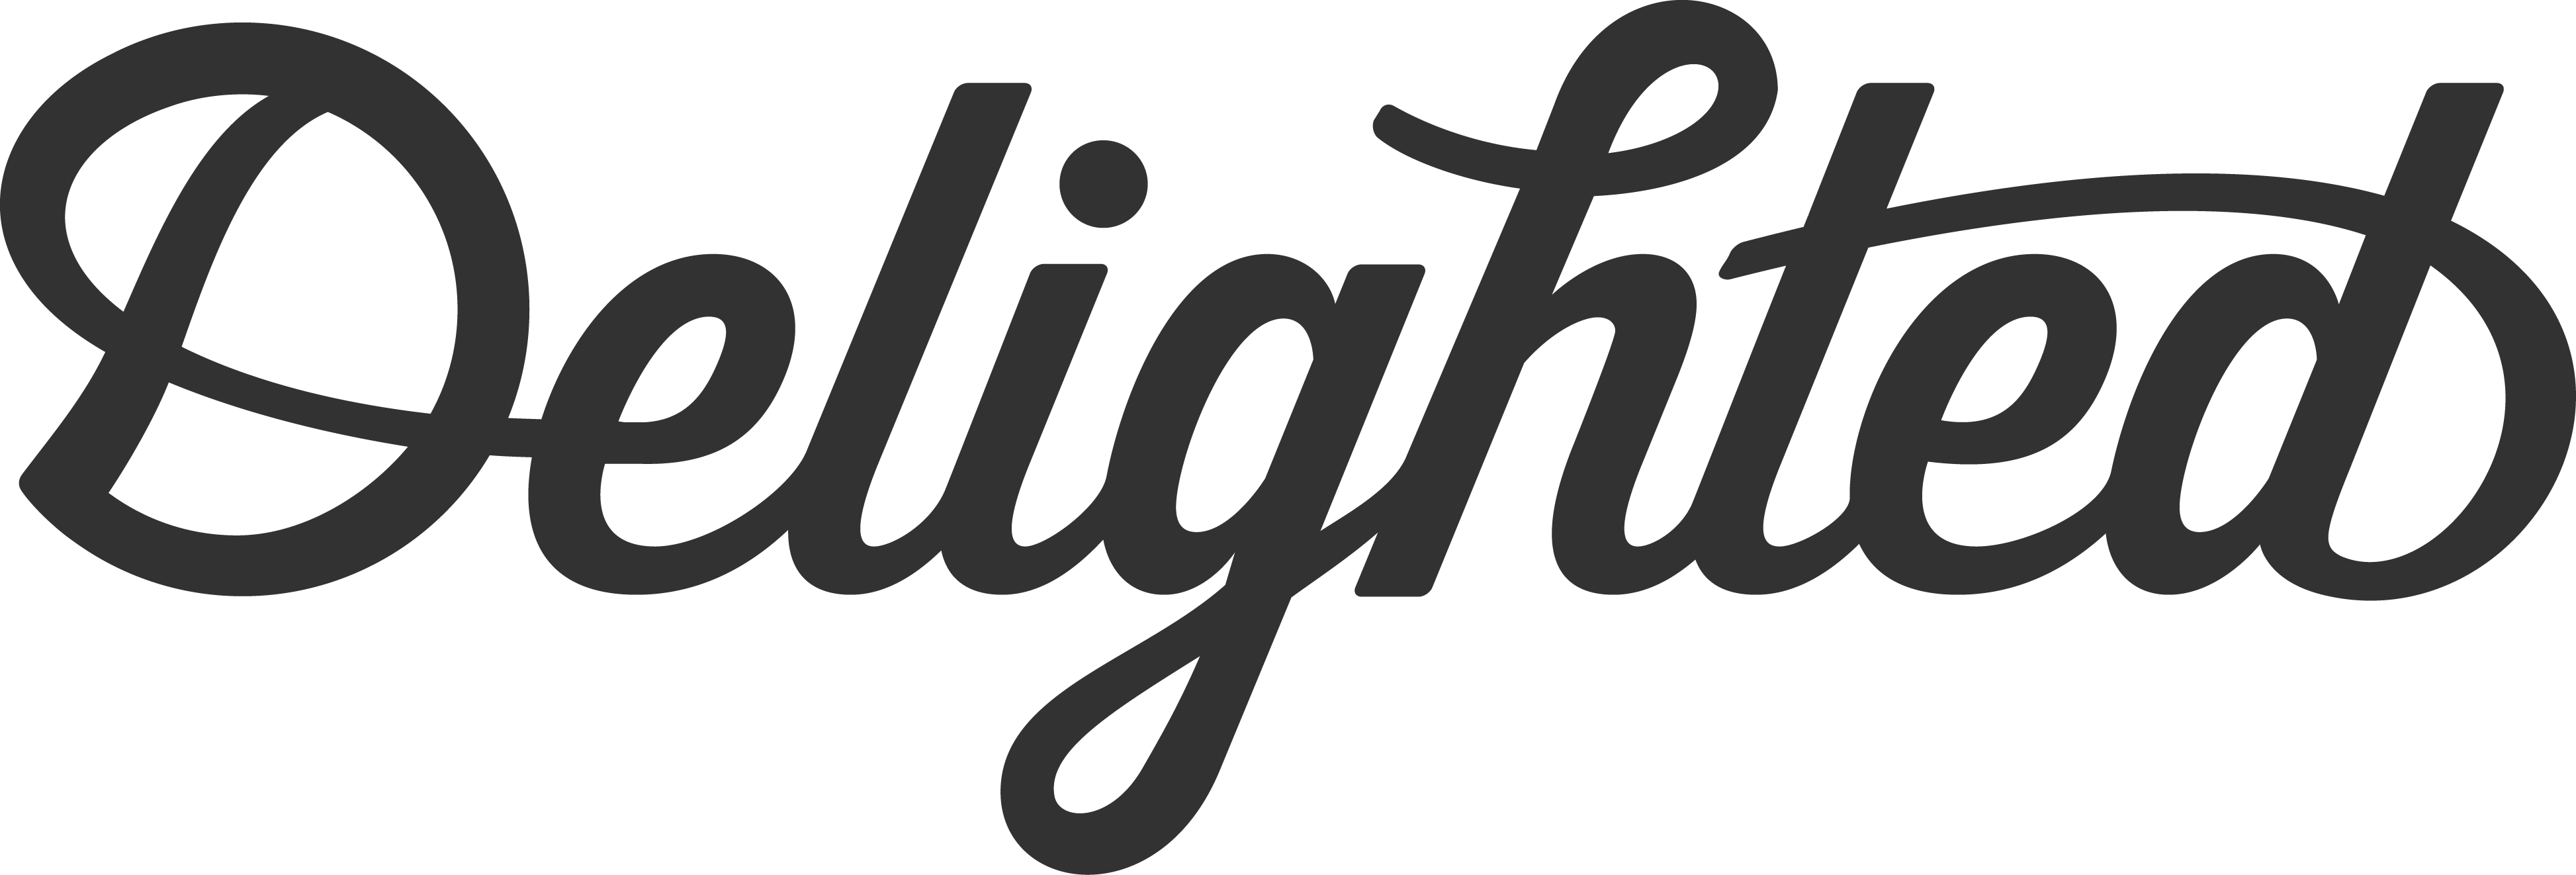 Image result for delighted logo